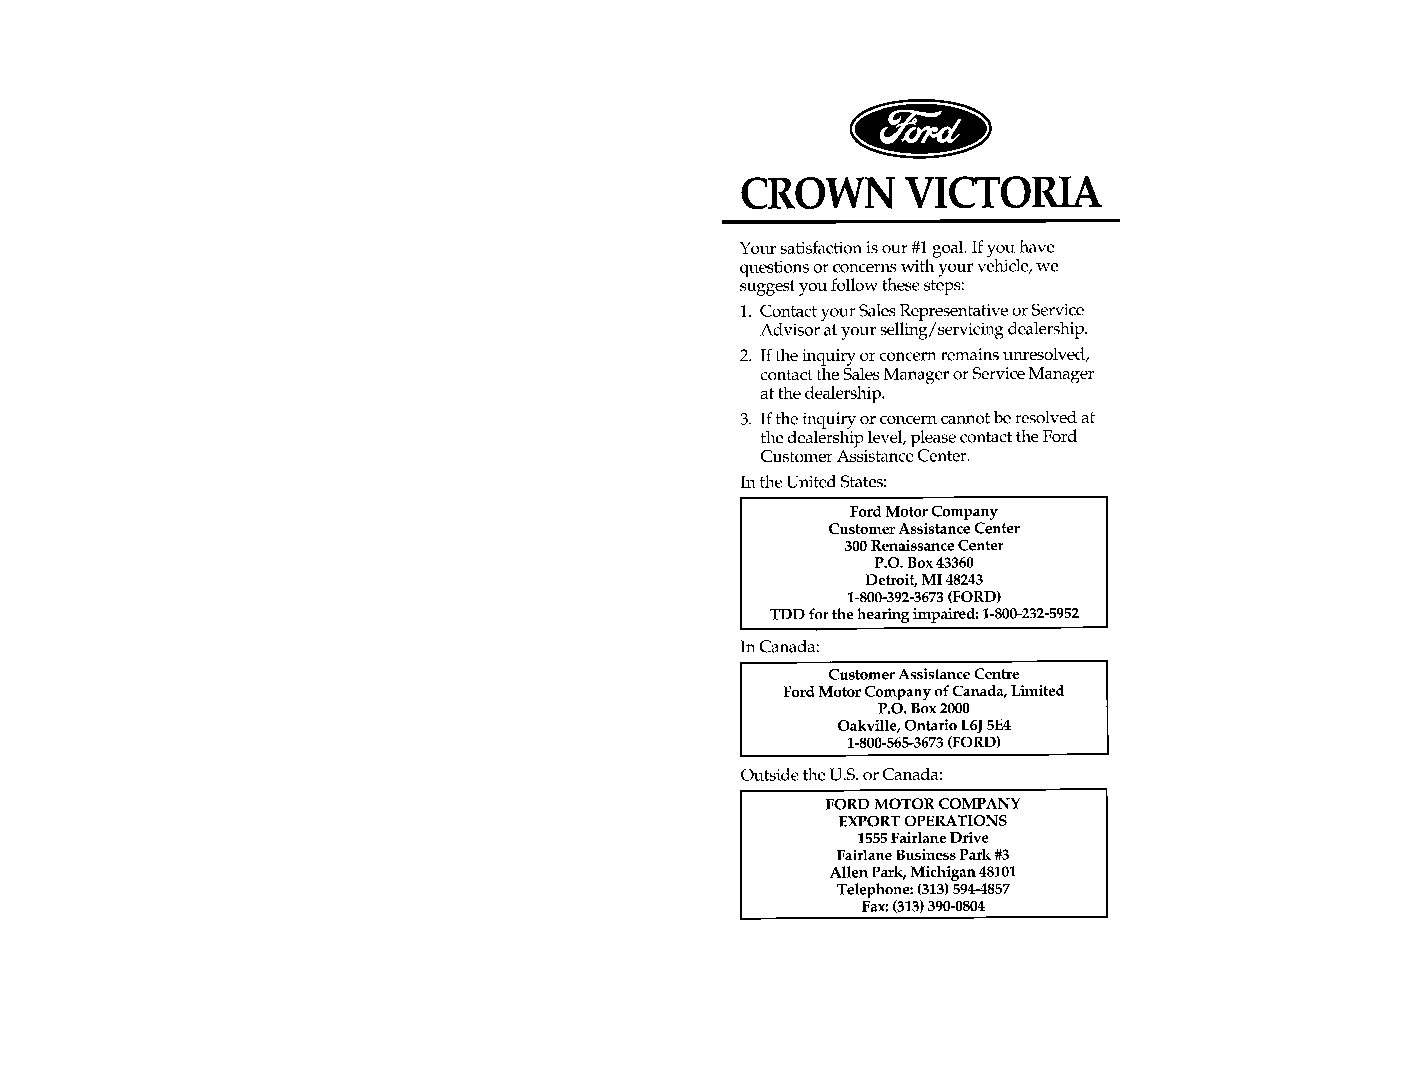 1996 ford crown victoria owners manual just give me the damn manual rh justgivemethedamnmanual com Ford Crown Victoria Police Interceptor 1956 Ford Crown Victoria